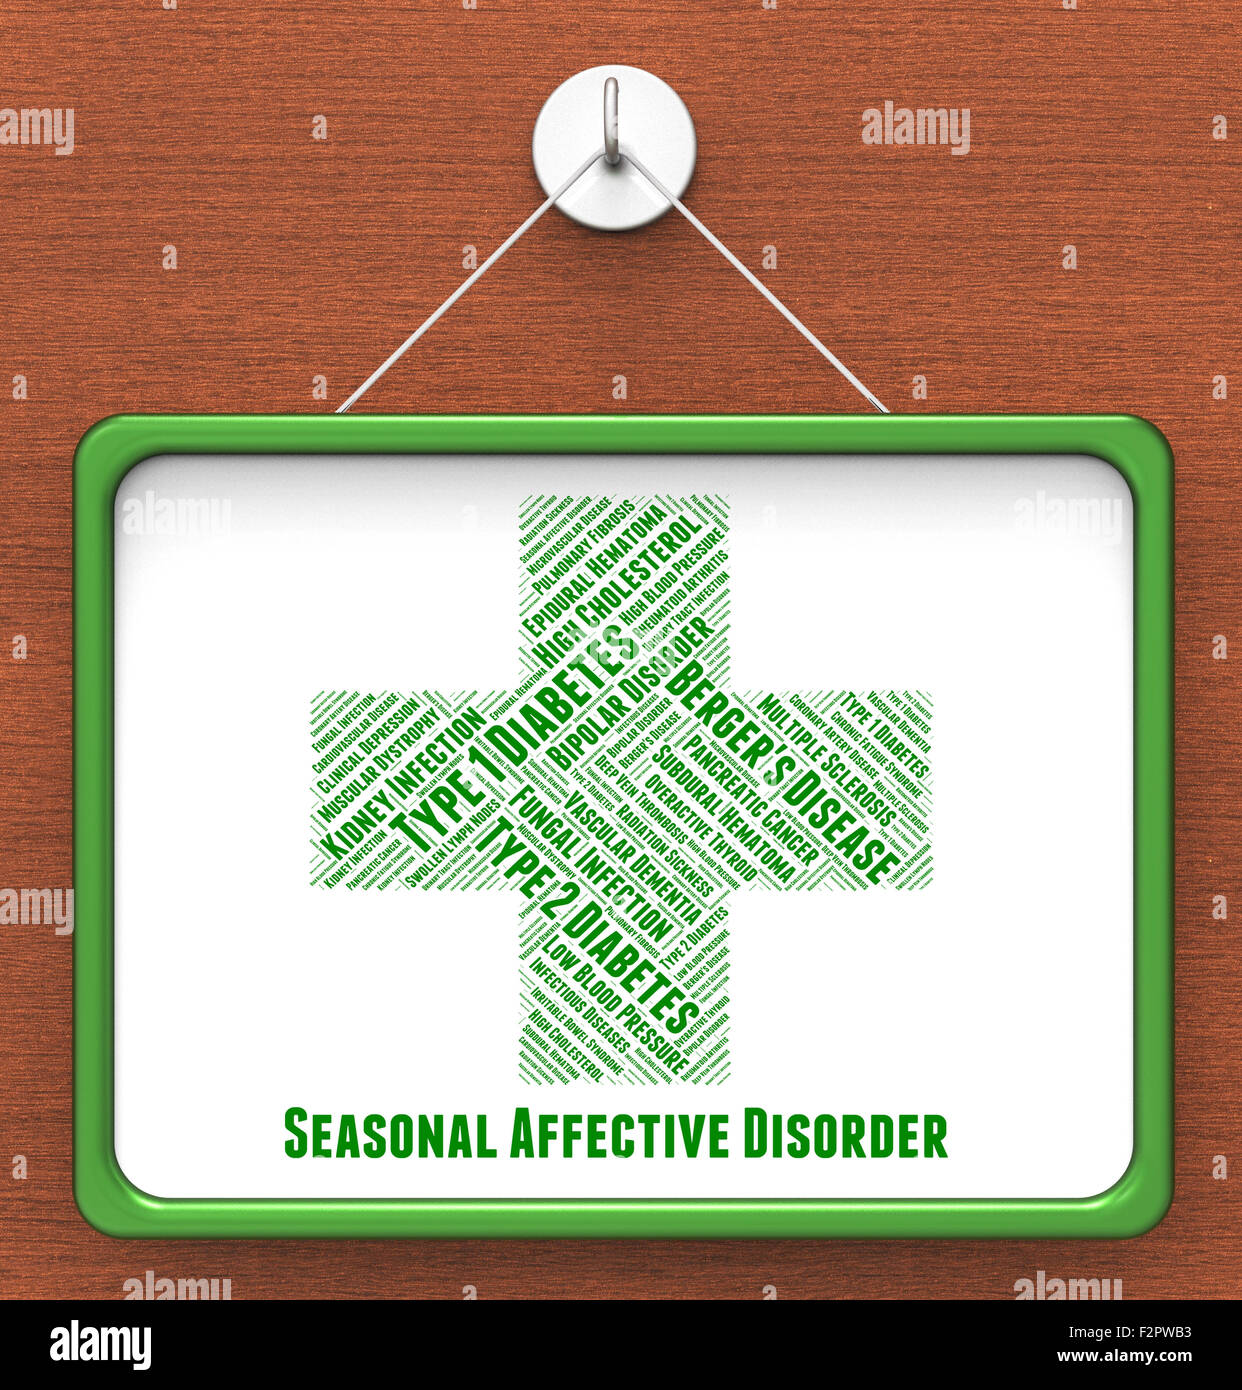 Seasonal Affective Disorder Meaning Ill Health And Sadness Stock Photo Alamy